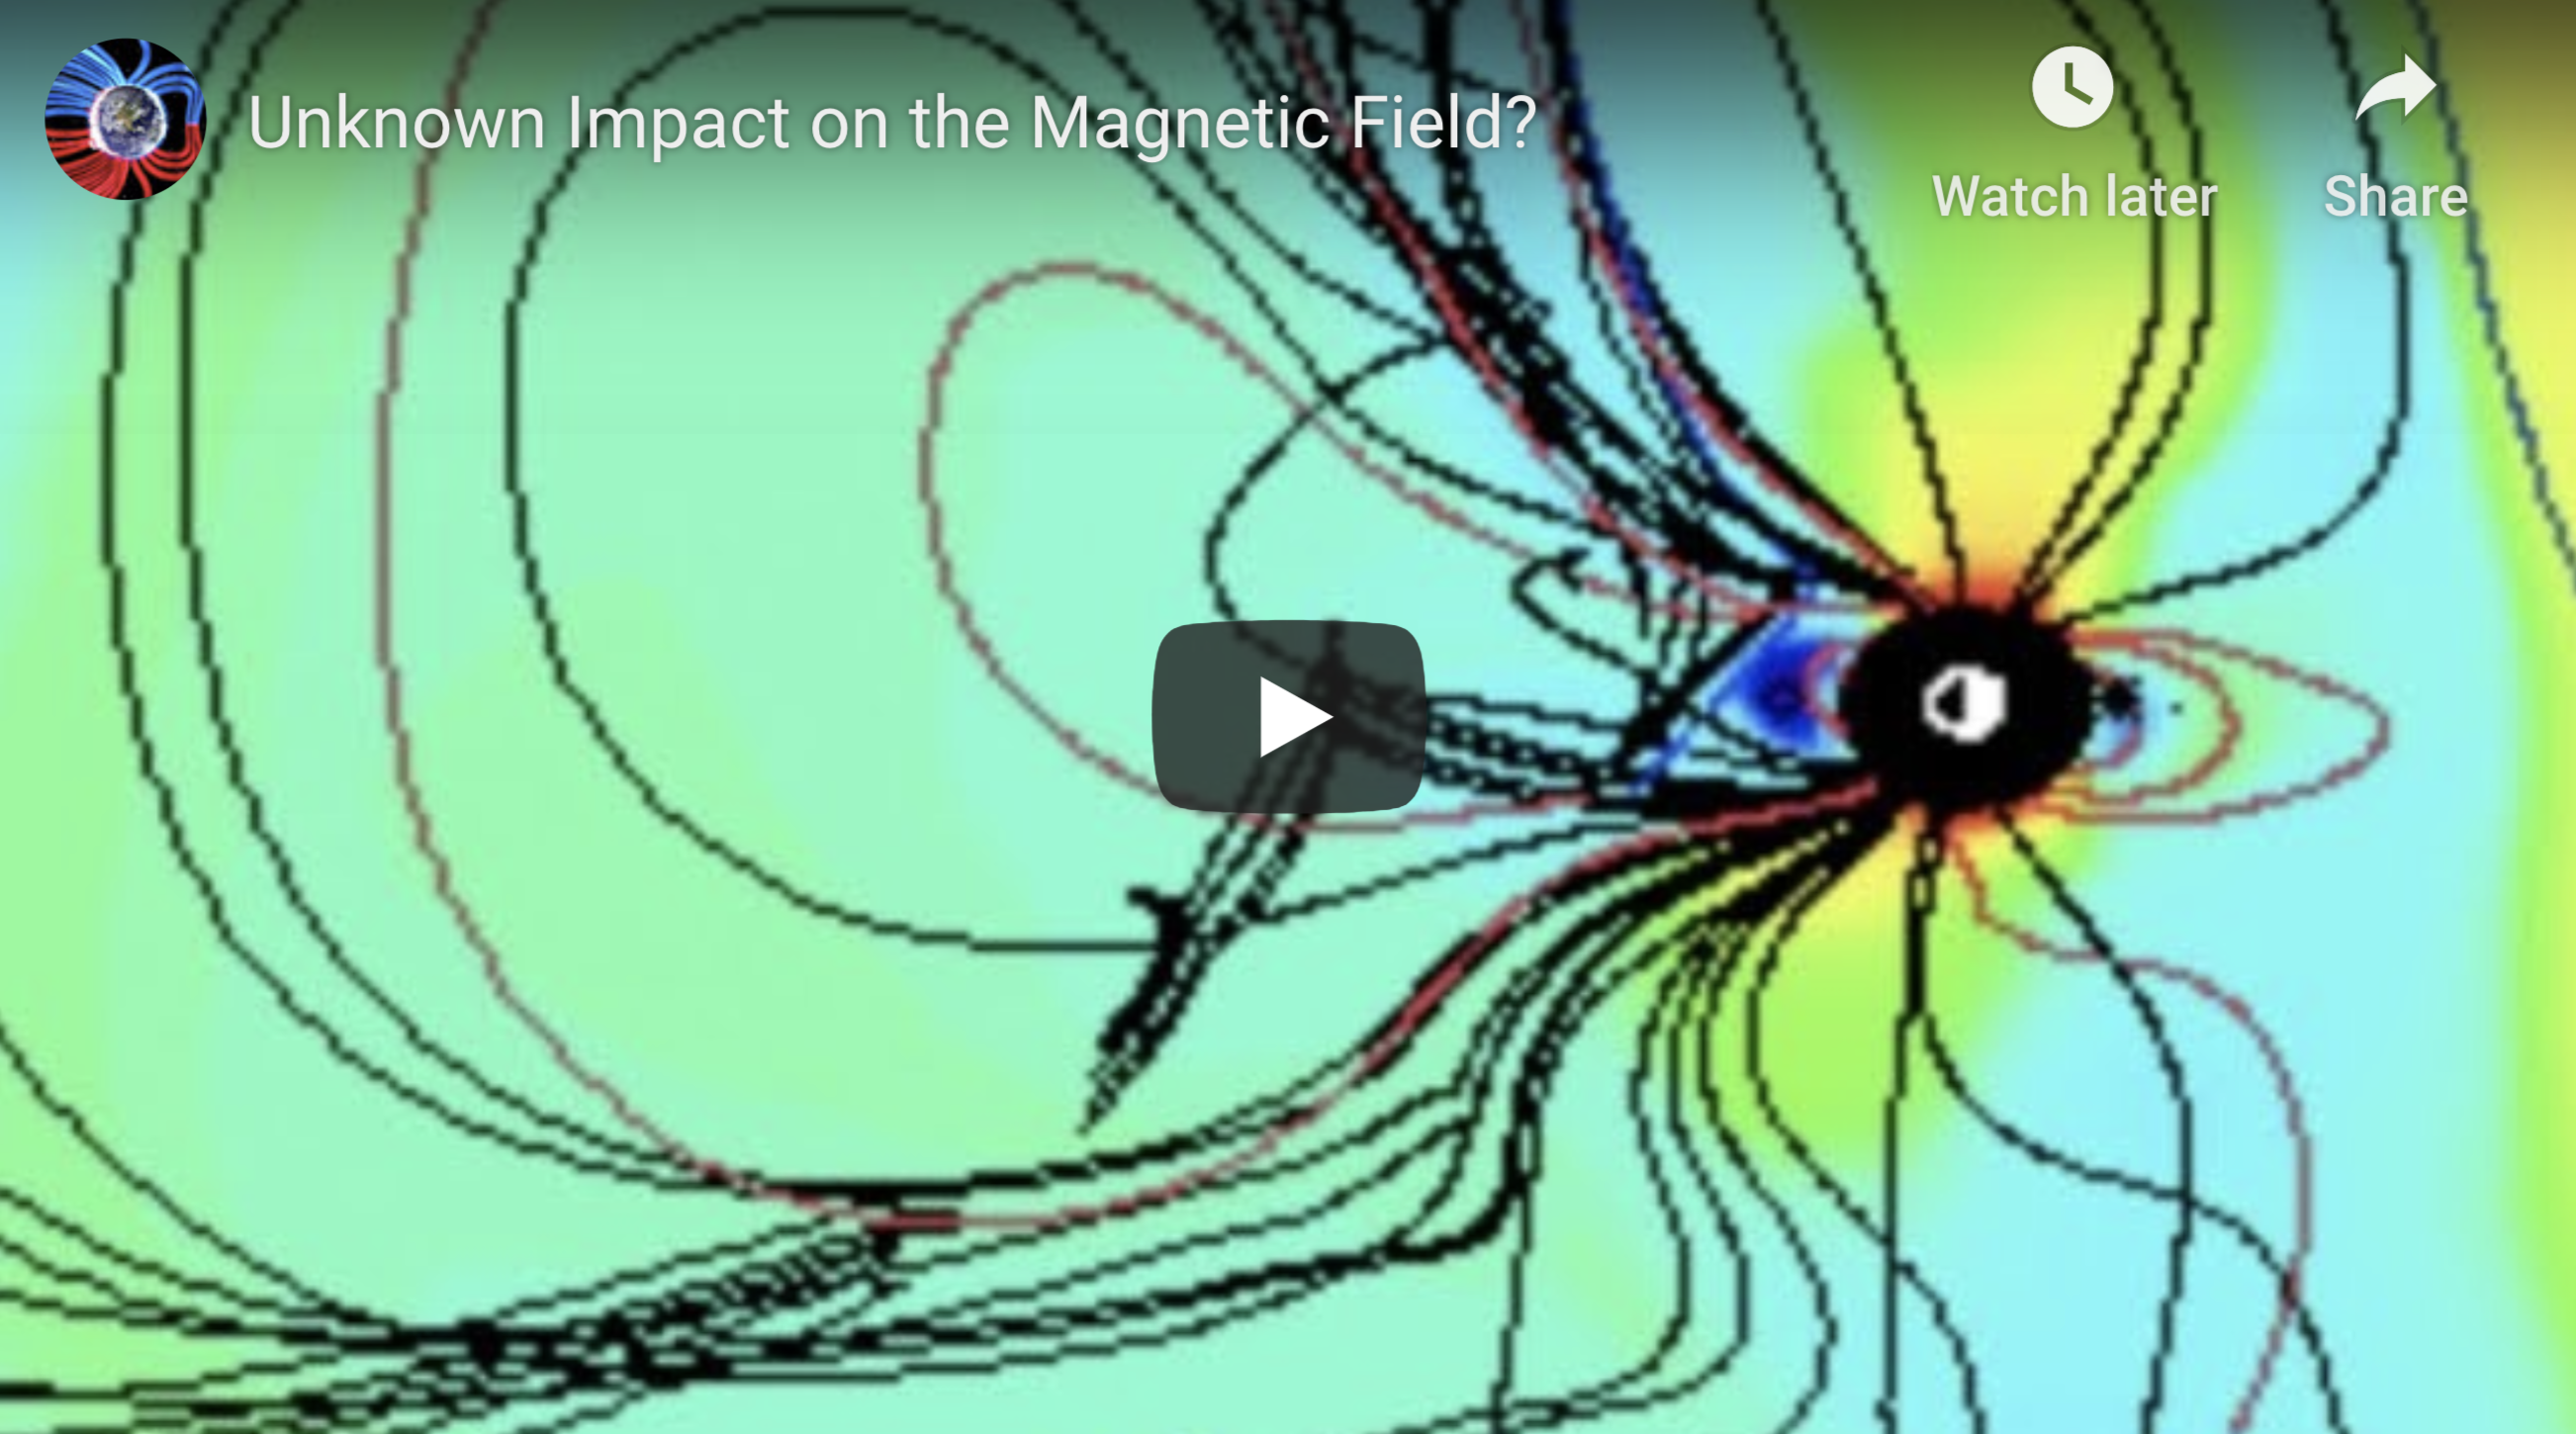 Unknown Impact on the Magnetic Field 4 11 2020